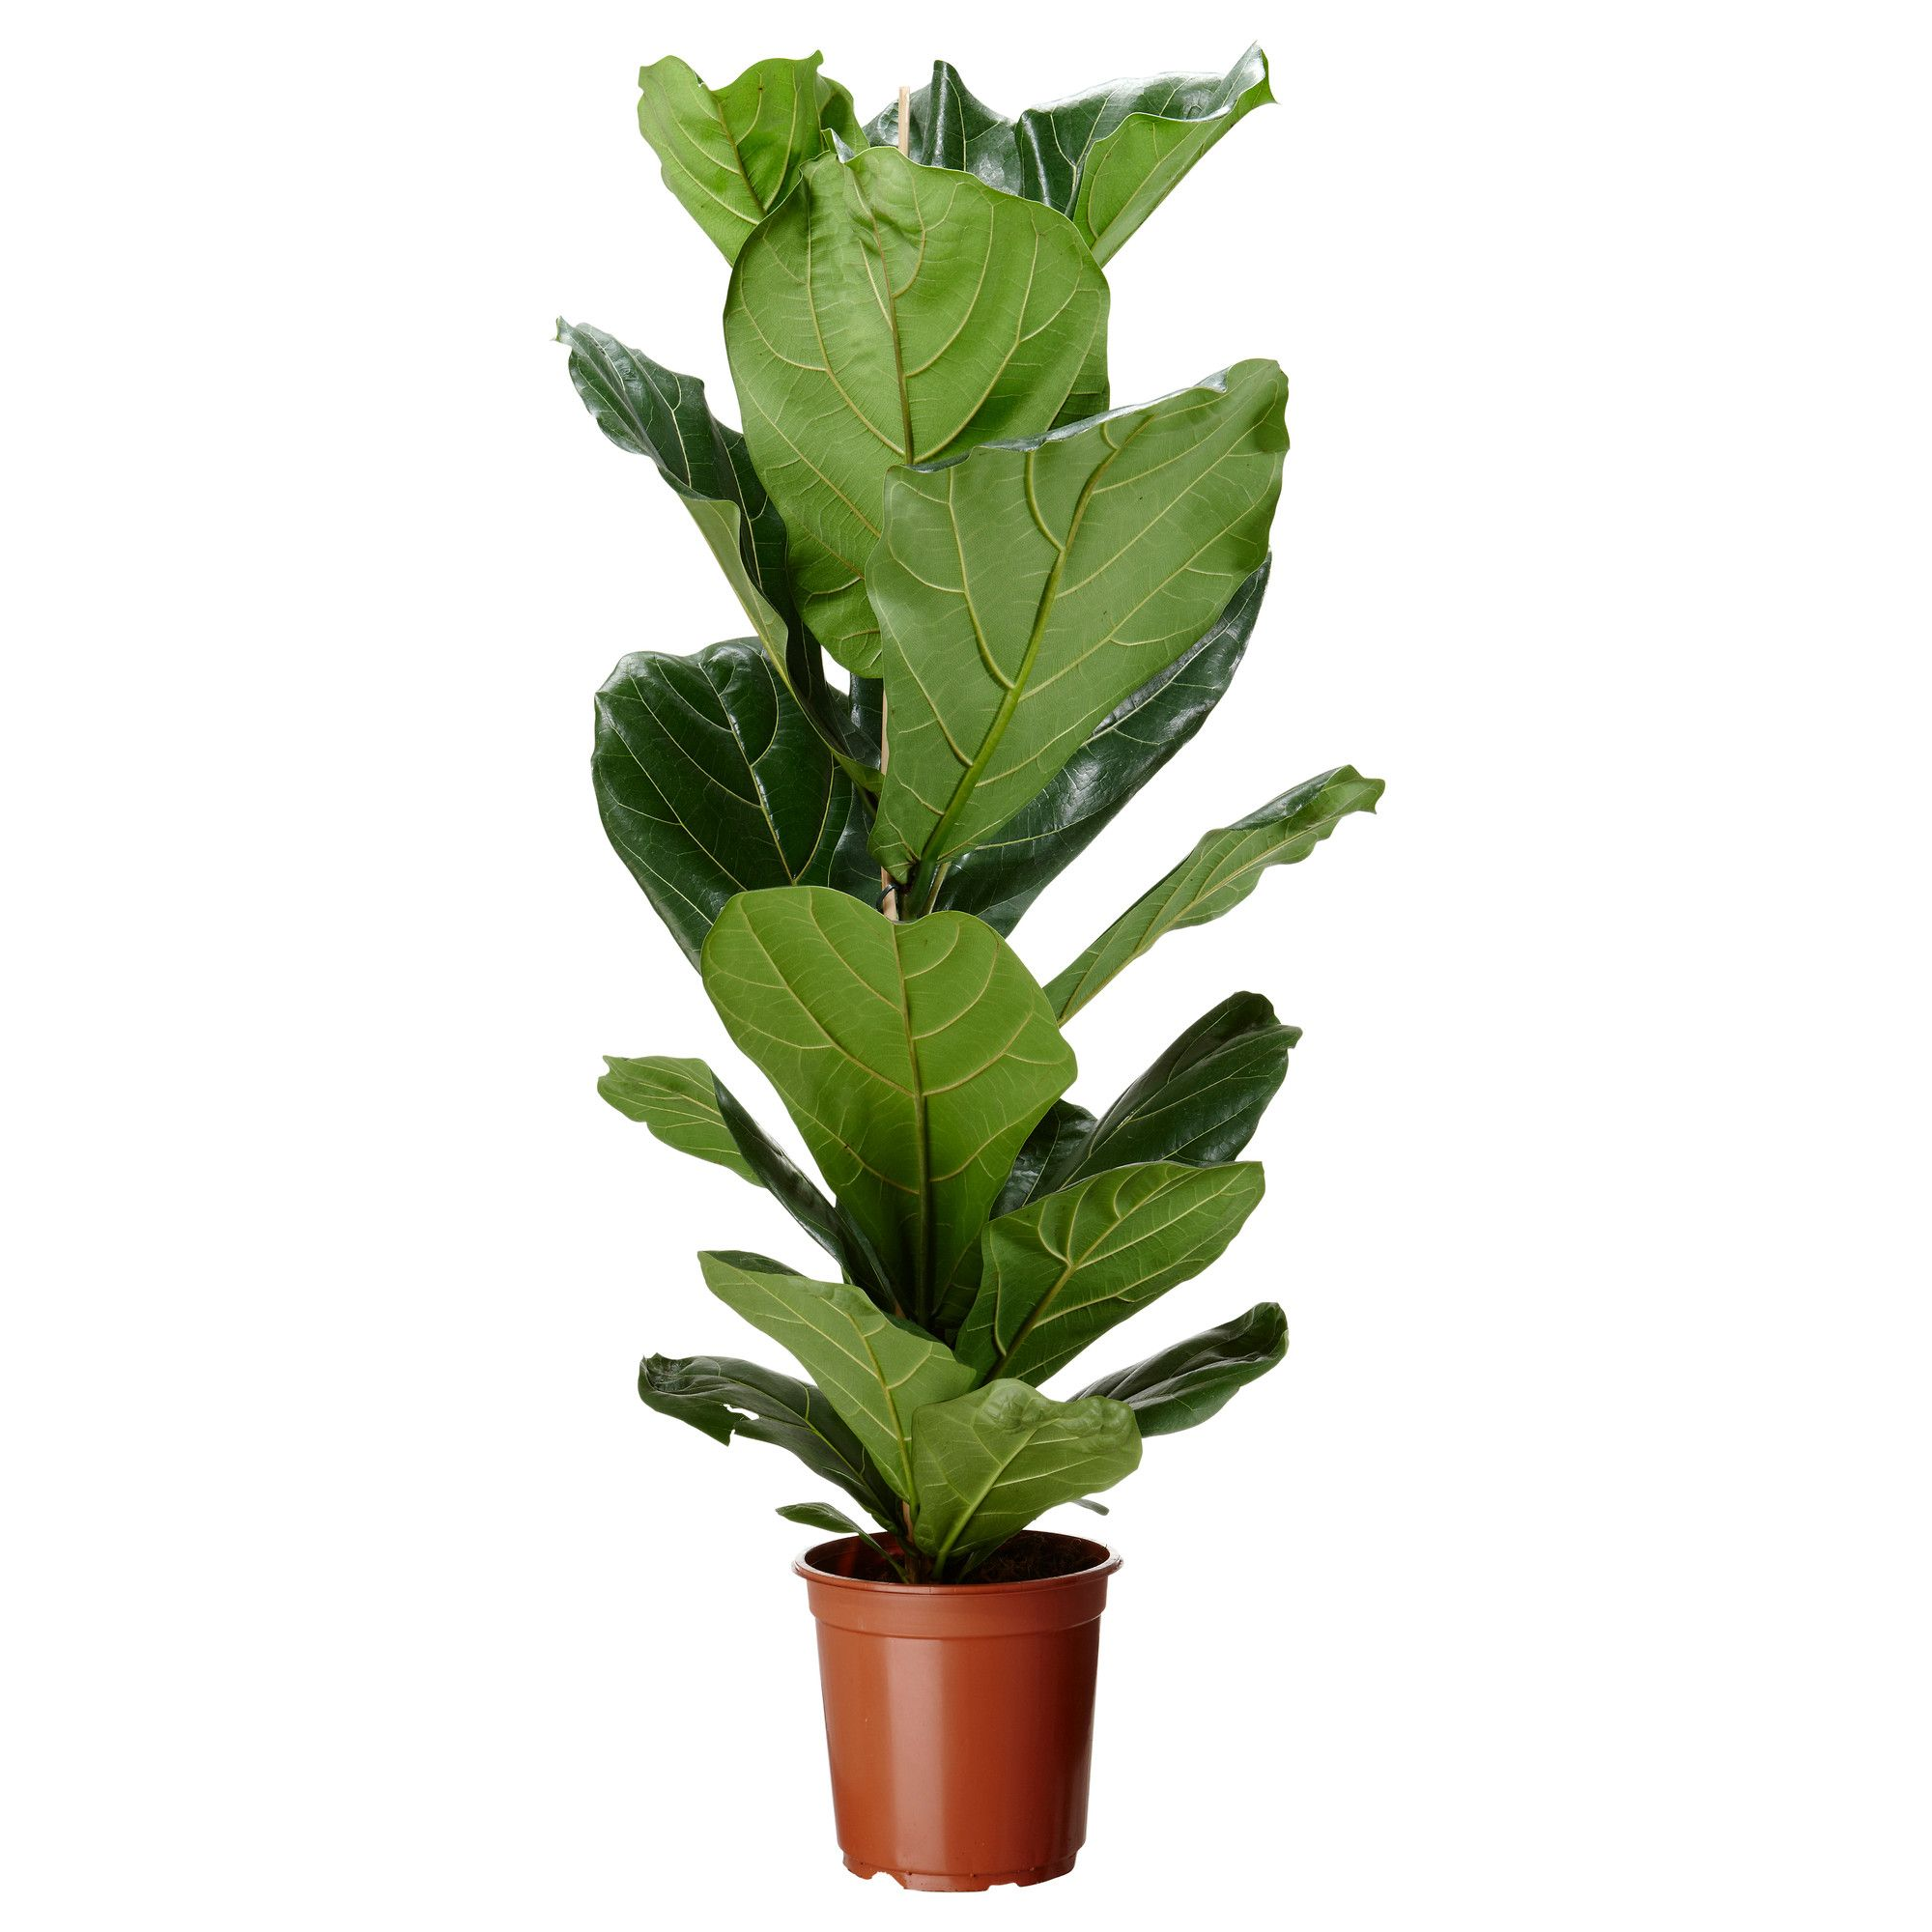 ficus lyrata potted plant ikea 13 fiddle leaf fig tree thank you ikea for saving me a. Black Bedroom Furniture Sets. Home Design Ideas